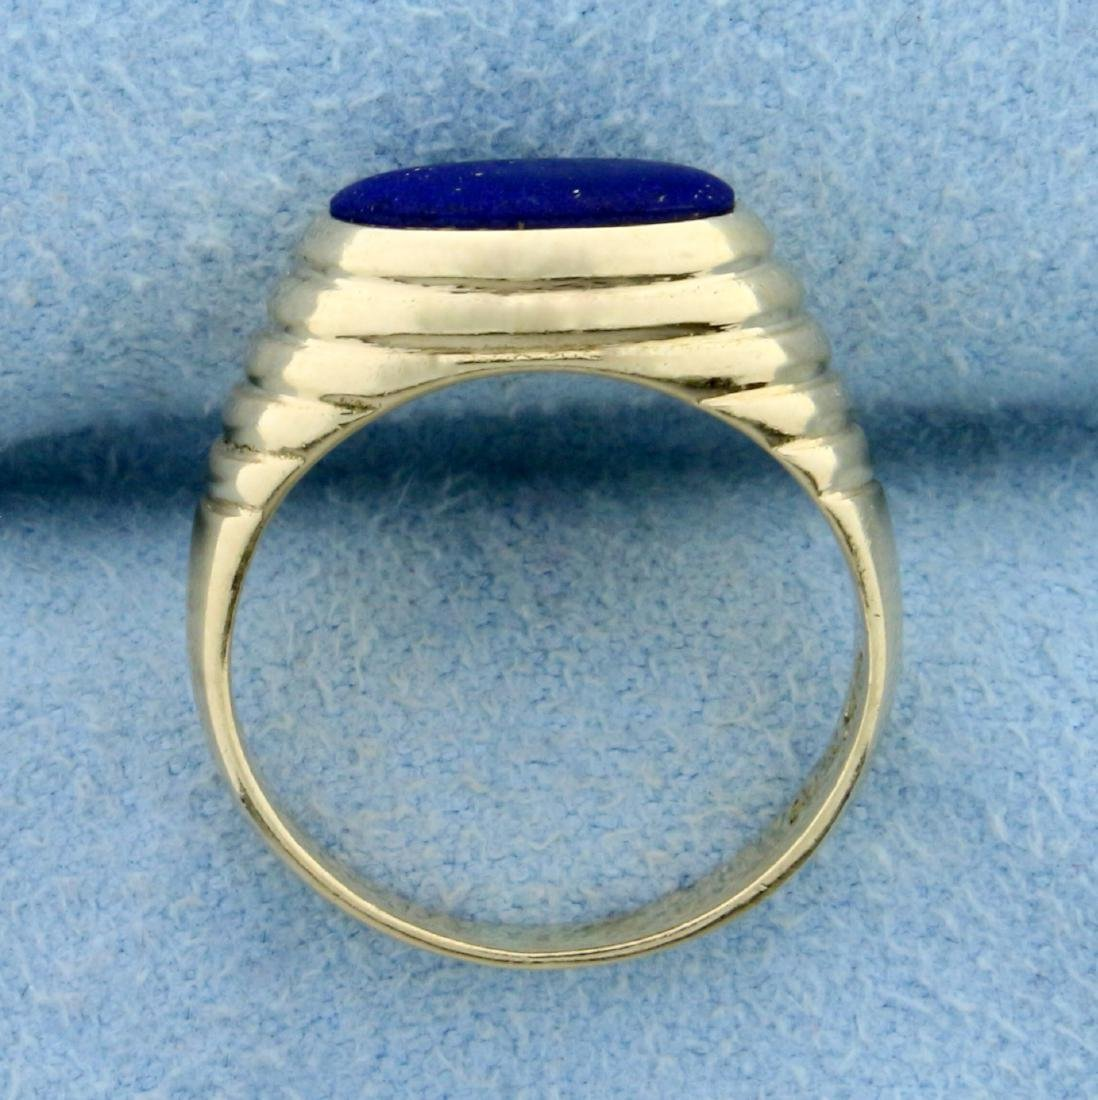 Lapis Lazuli Ring in 14K Yellow Gold - 3